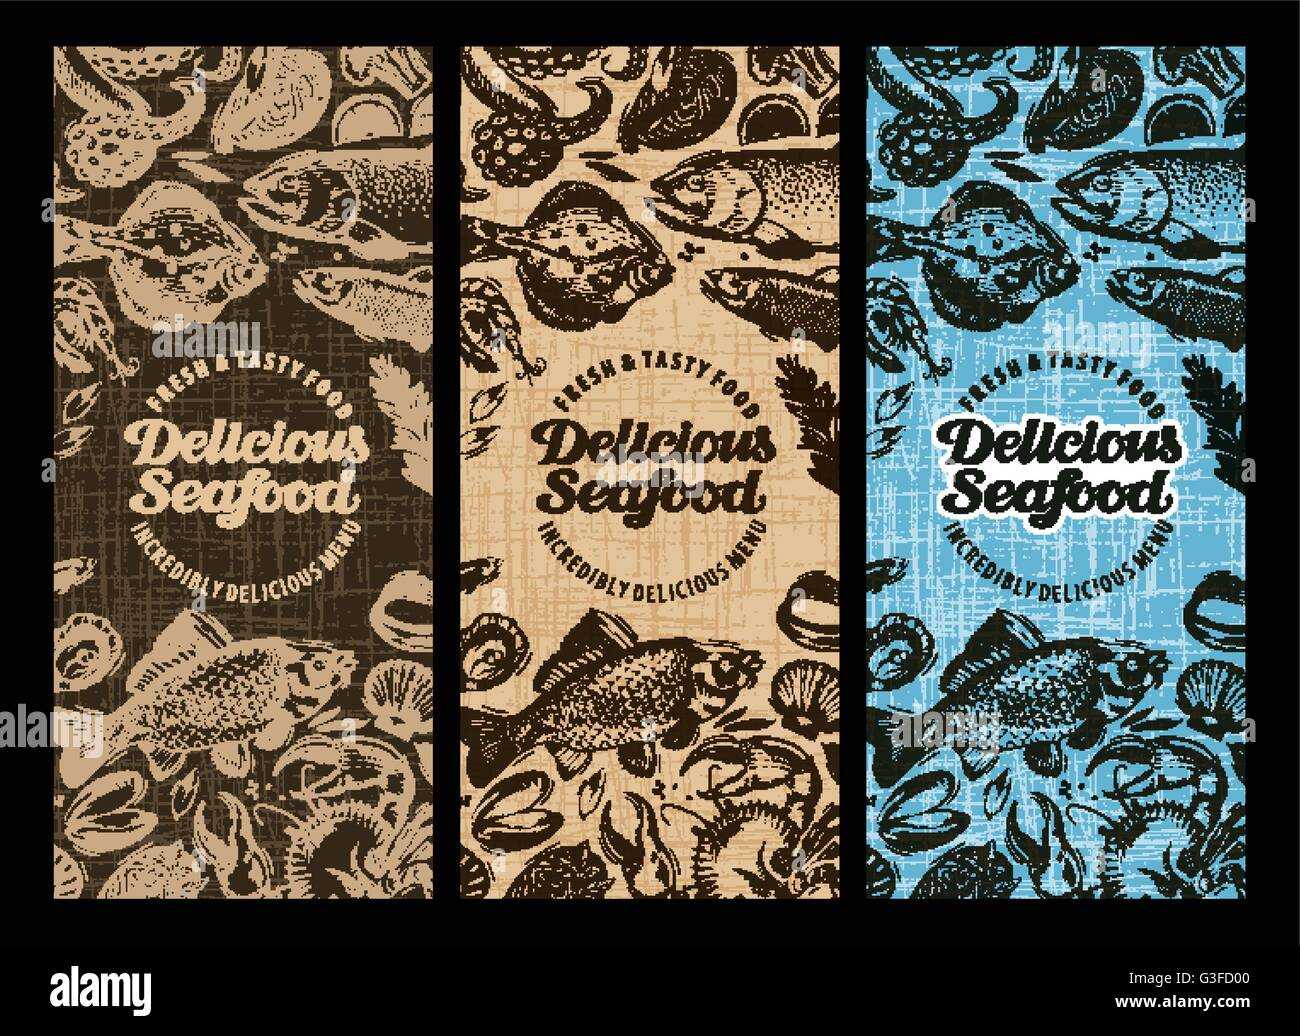 Seafood Restaurant Brochure Menu Design Hand Drawn Food Graphic Stock Vector Image Art Alamy